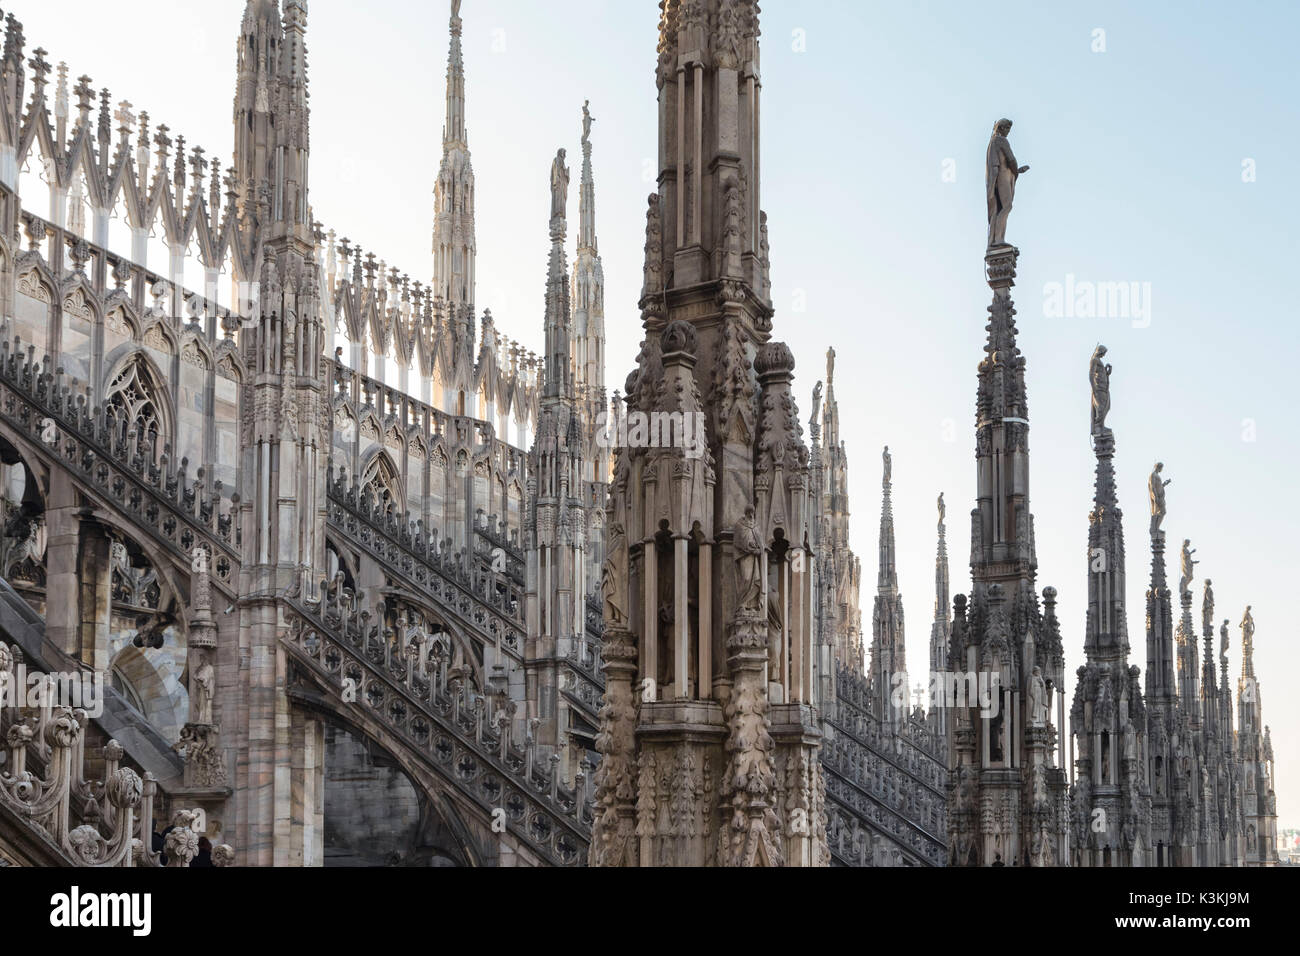 On the rooftop of the Duomo di Milano, among the white marble spiers, Milano, Lombardy, Italy. - Stock Image